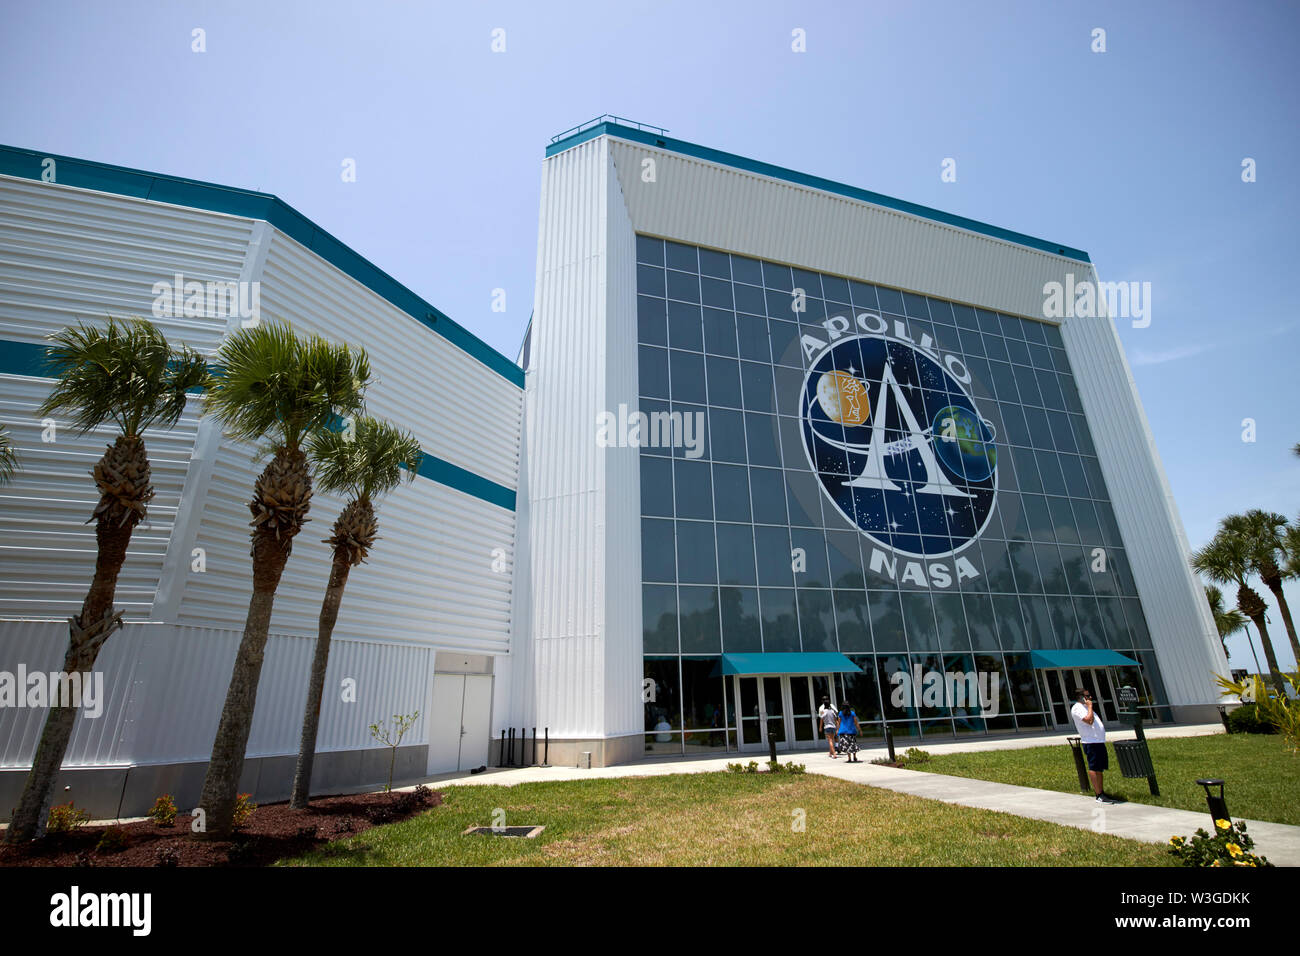 The new Moon Tree Garden in the Apollo/Saturn 5 center Kennedy Space Center Florida USA on the week of the 50th anniversary of the moon landings - Stock Image